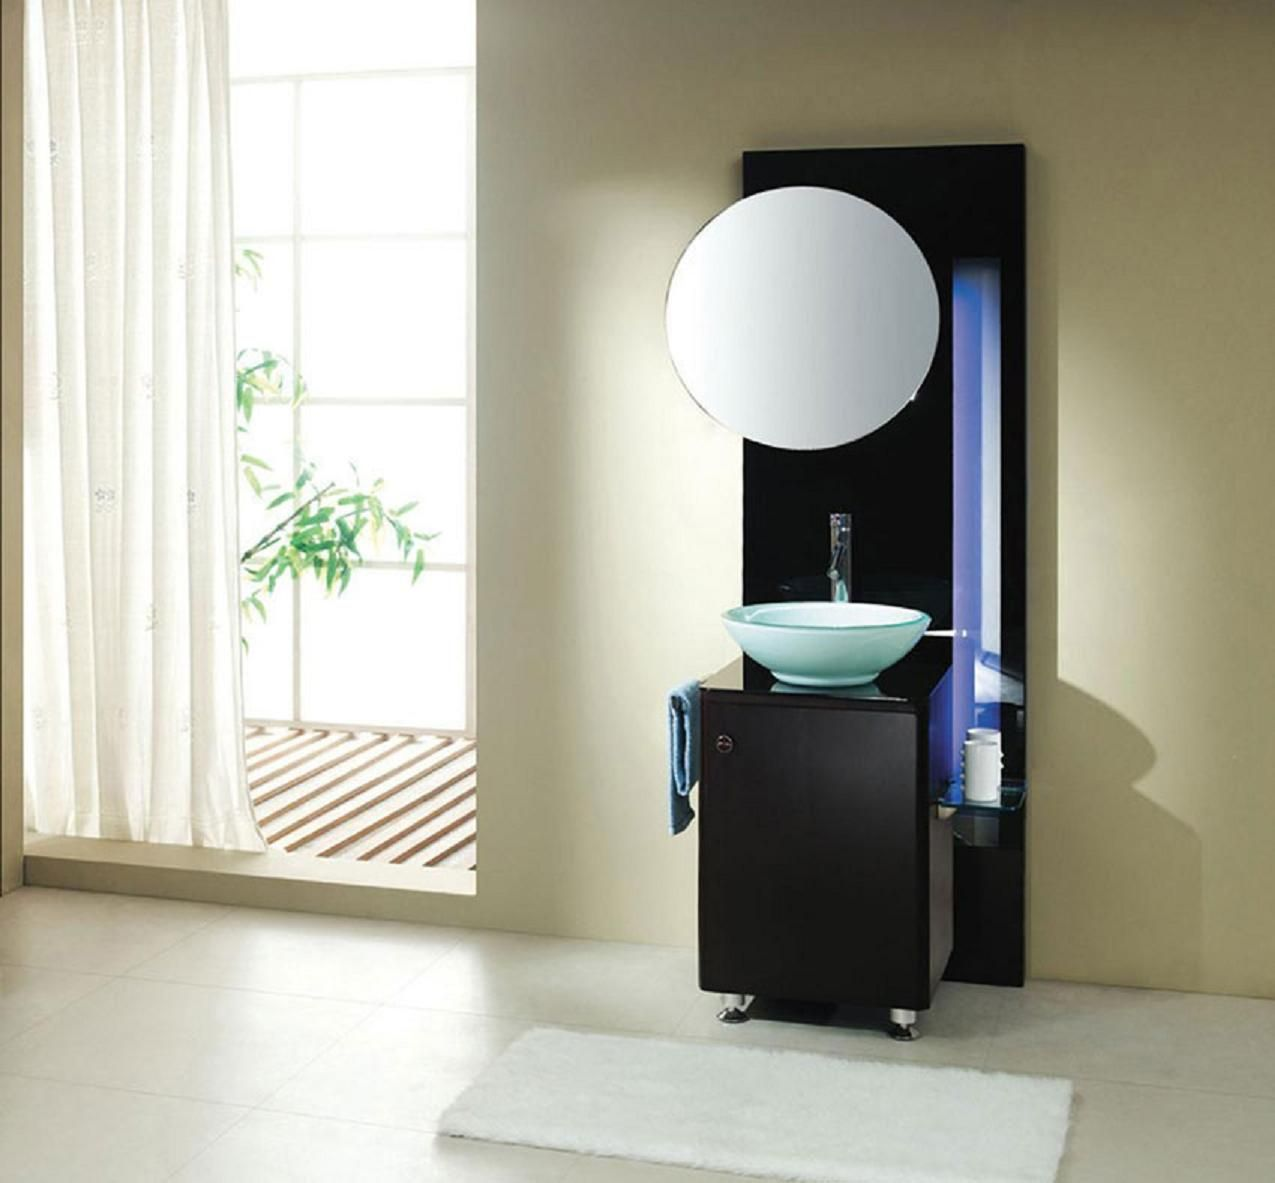 Goodlooking Stylish With Cream Wall Paint Color And Black Cabinet Amusing Small Bathroom Sinks Uk 2018